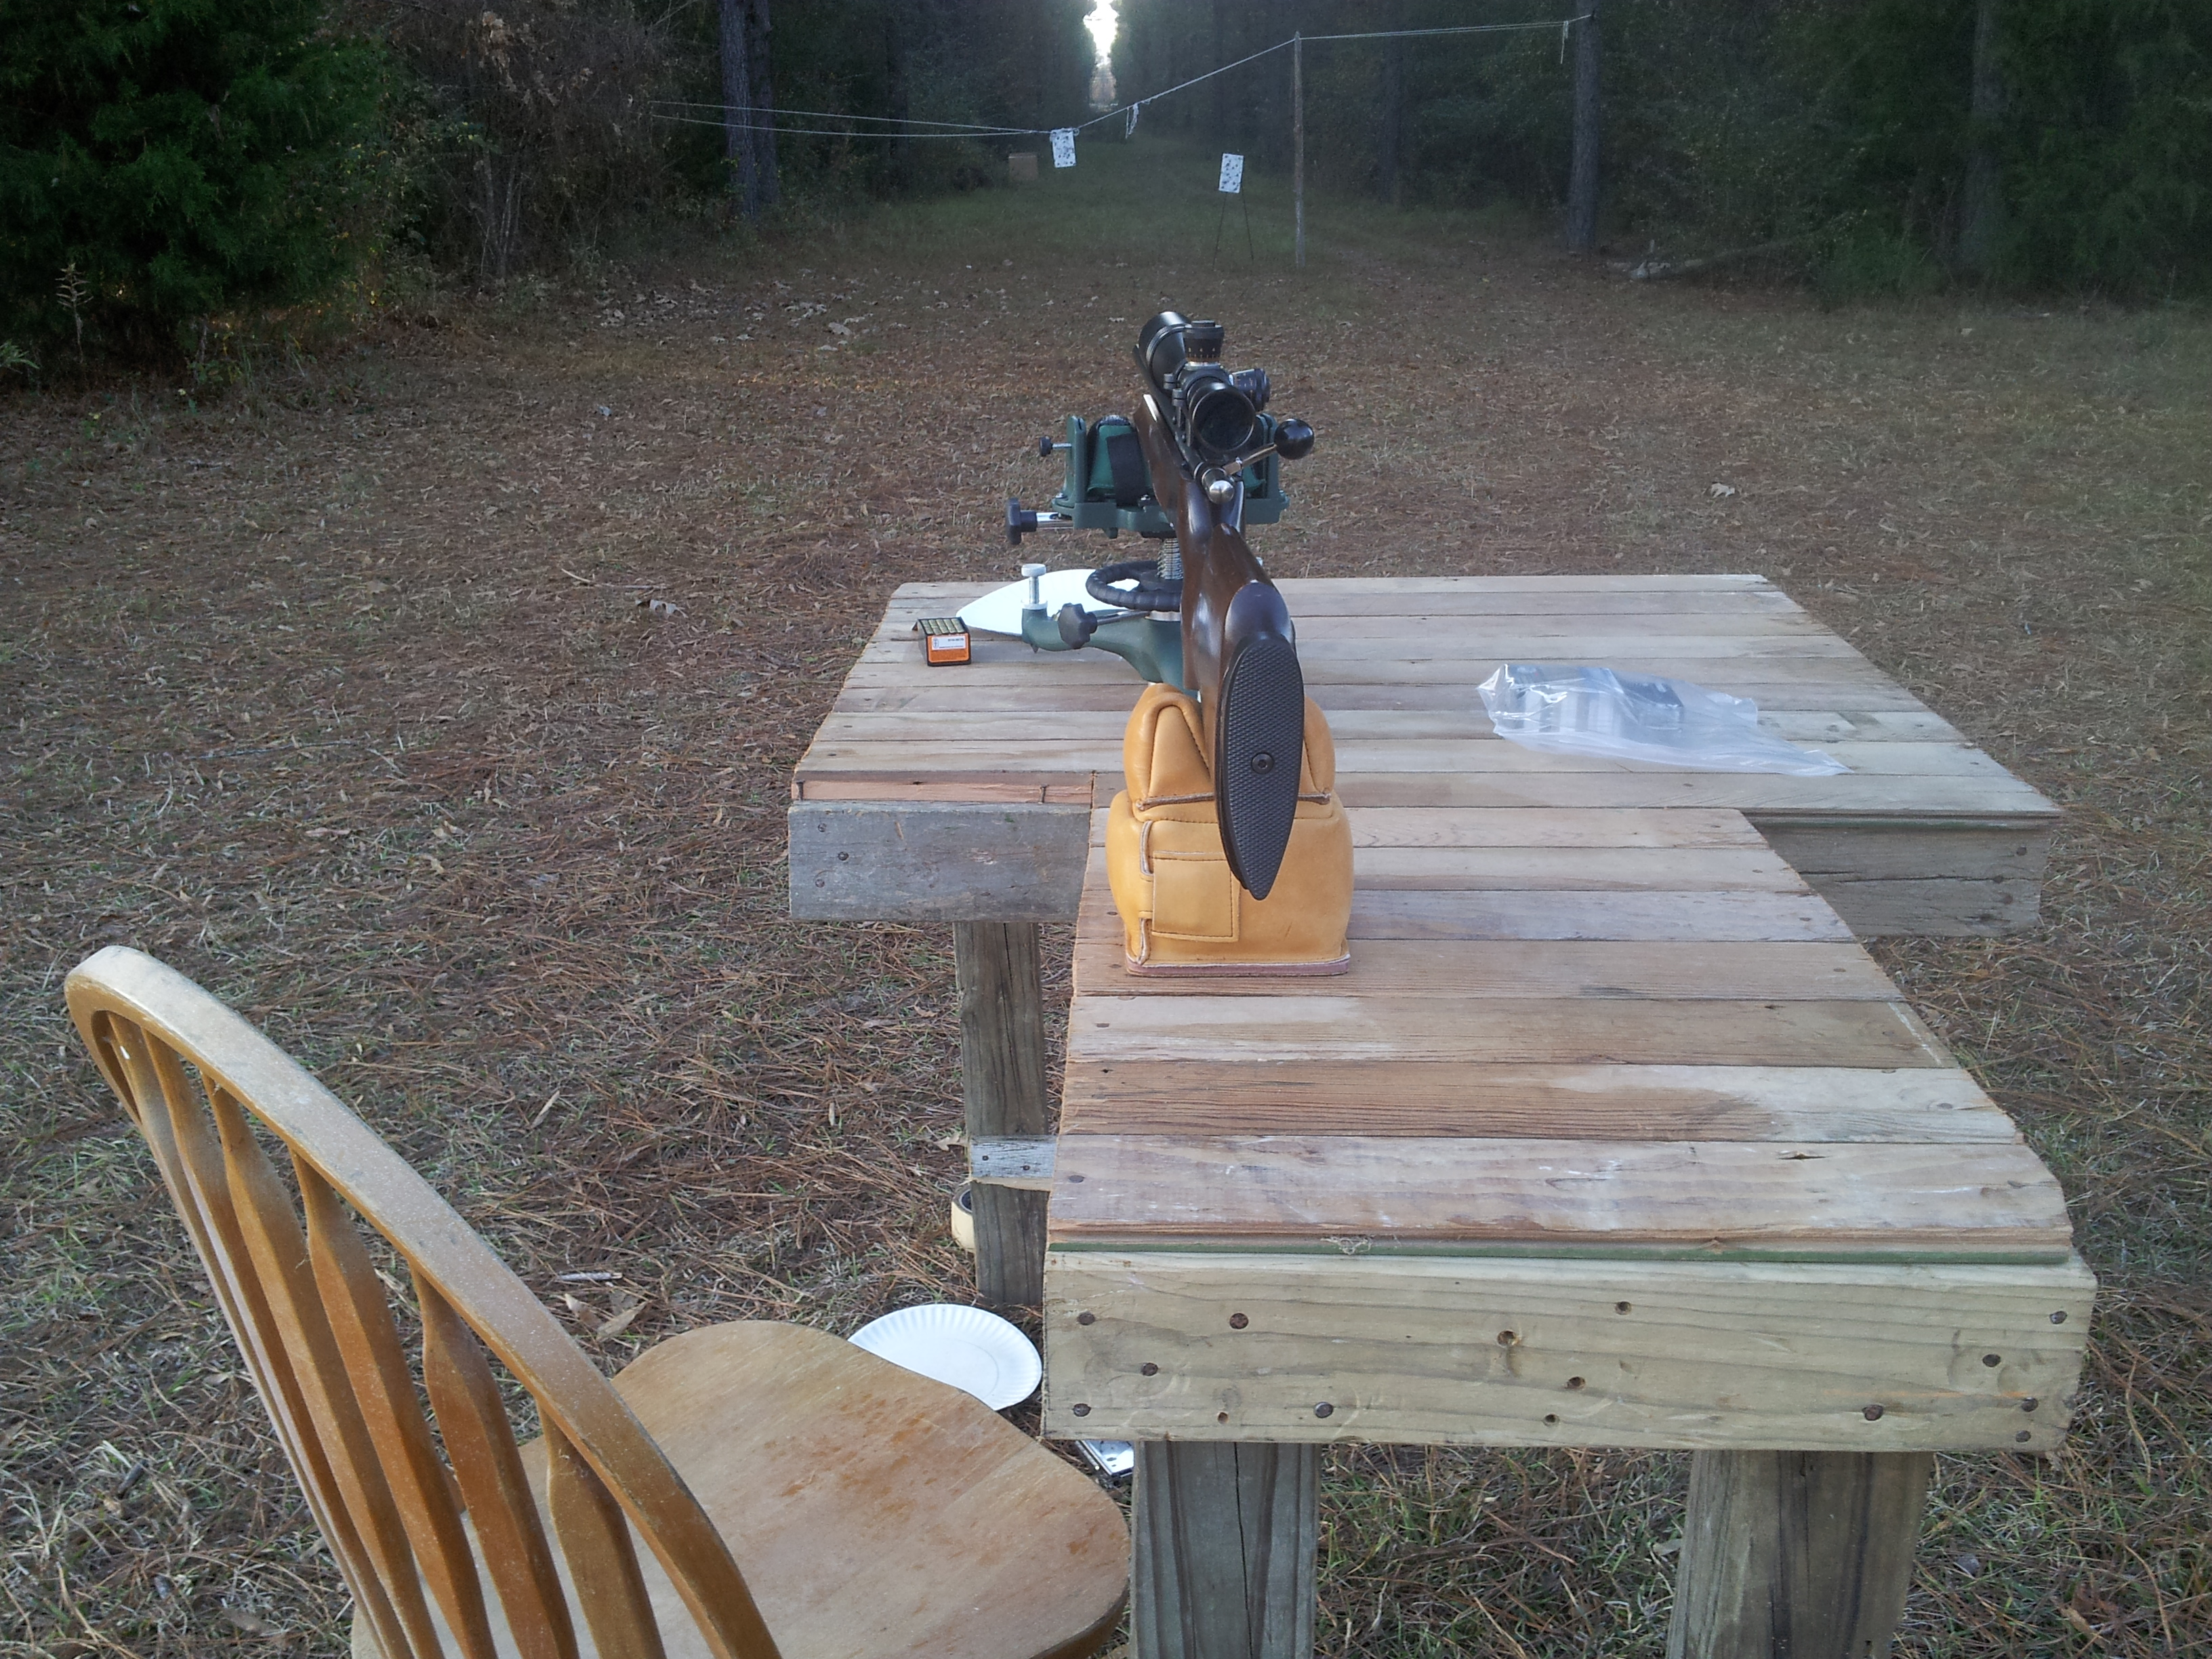 Target Shooting Bench | How to Build A Shooting Bench | Homemade Bench Rest